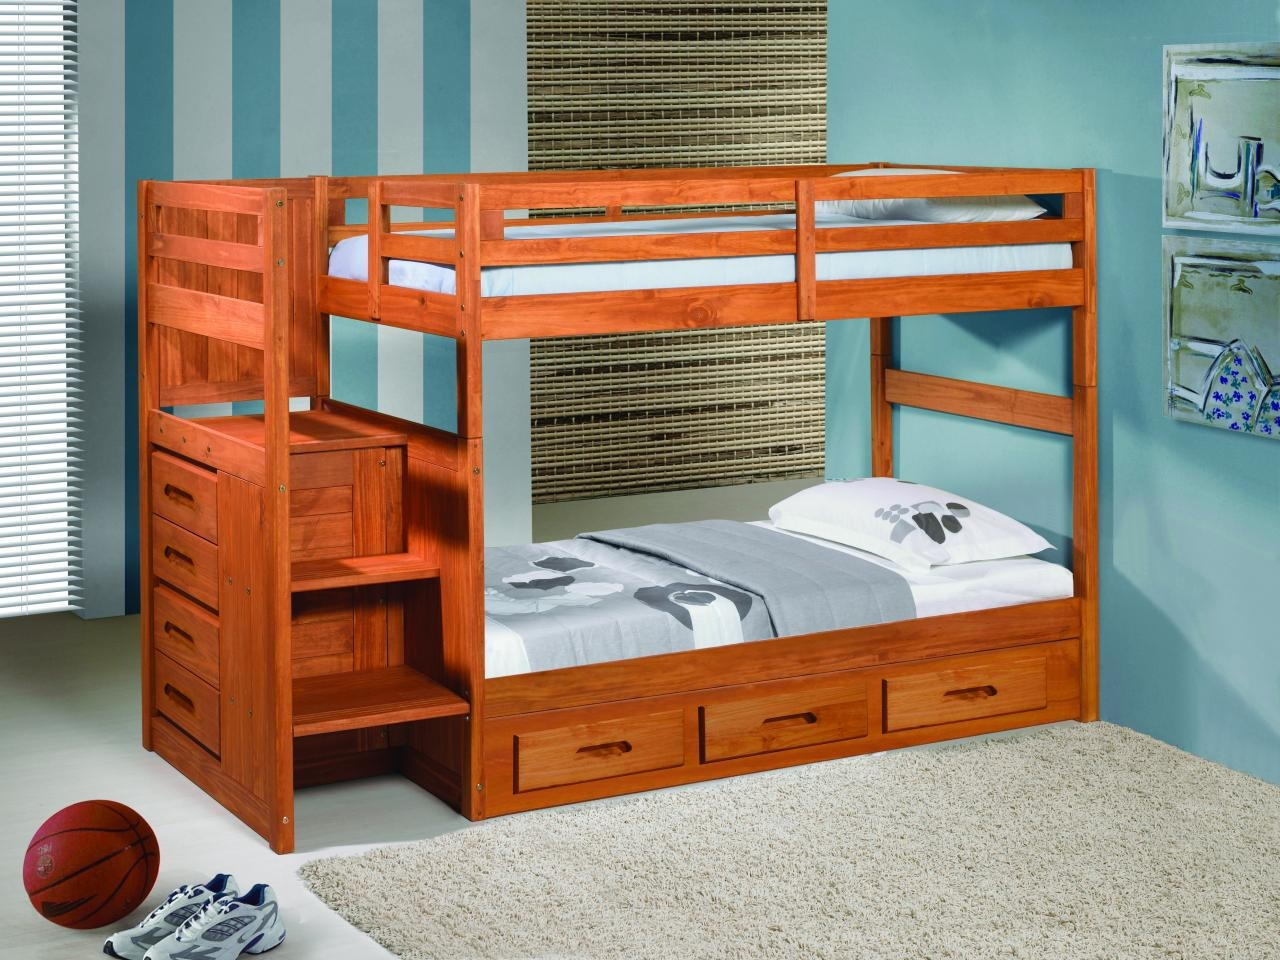 plete Your Simple Bedroom with Low profile Bunk Bed